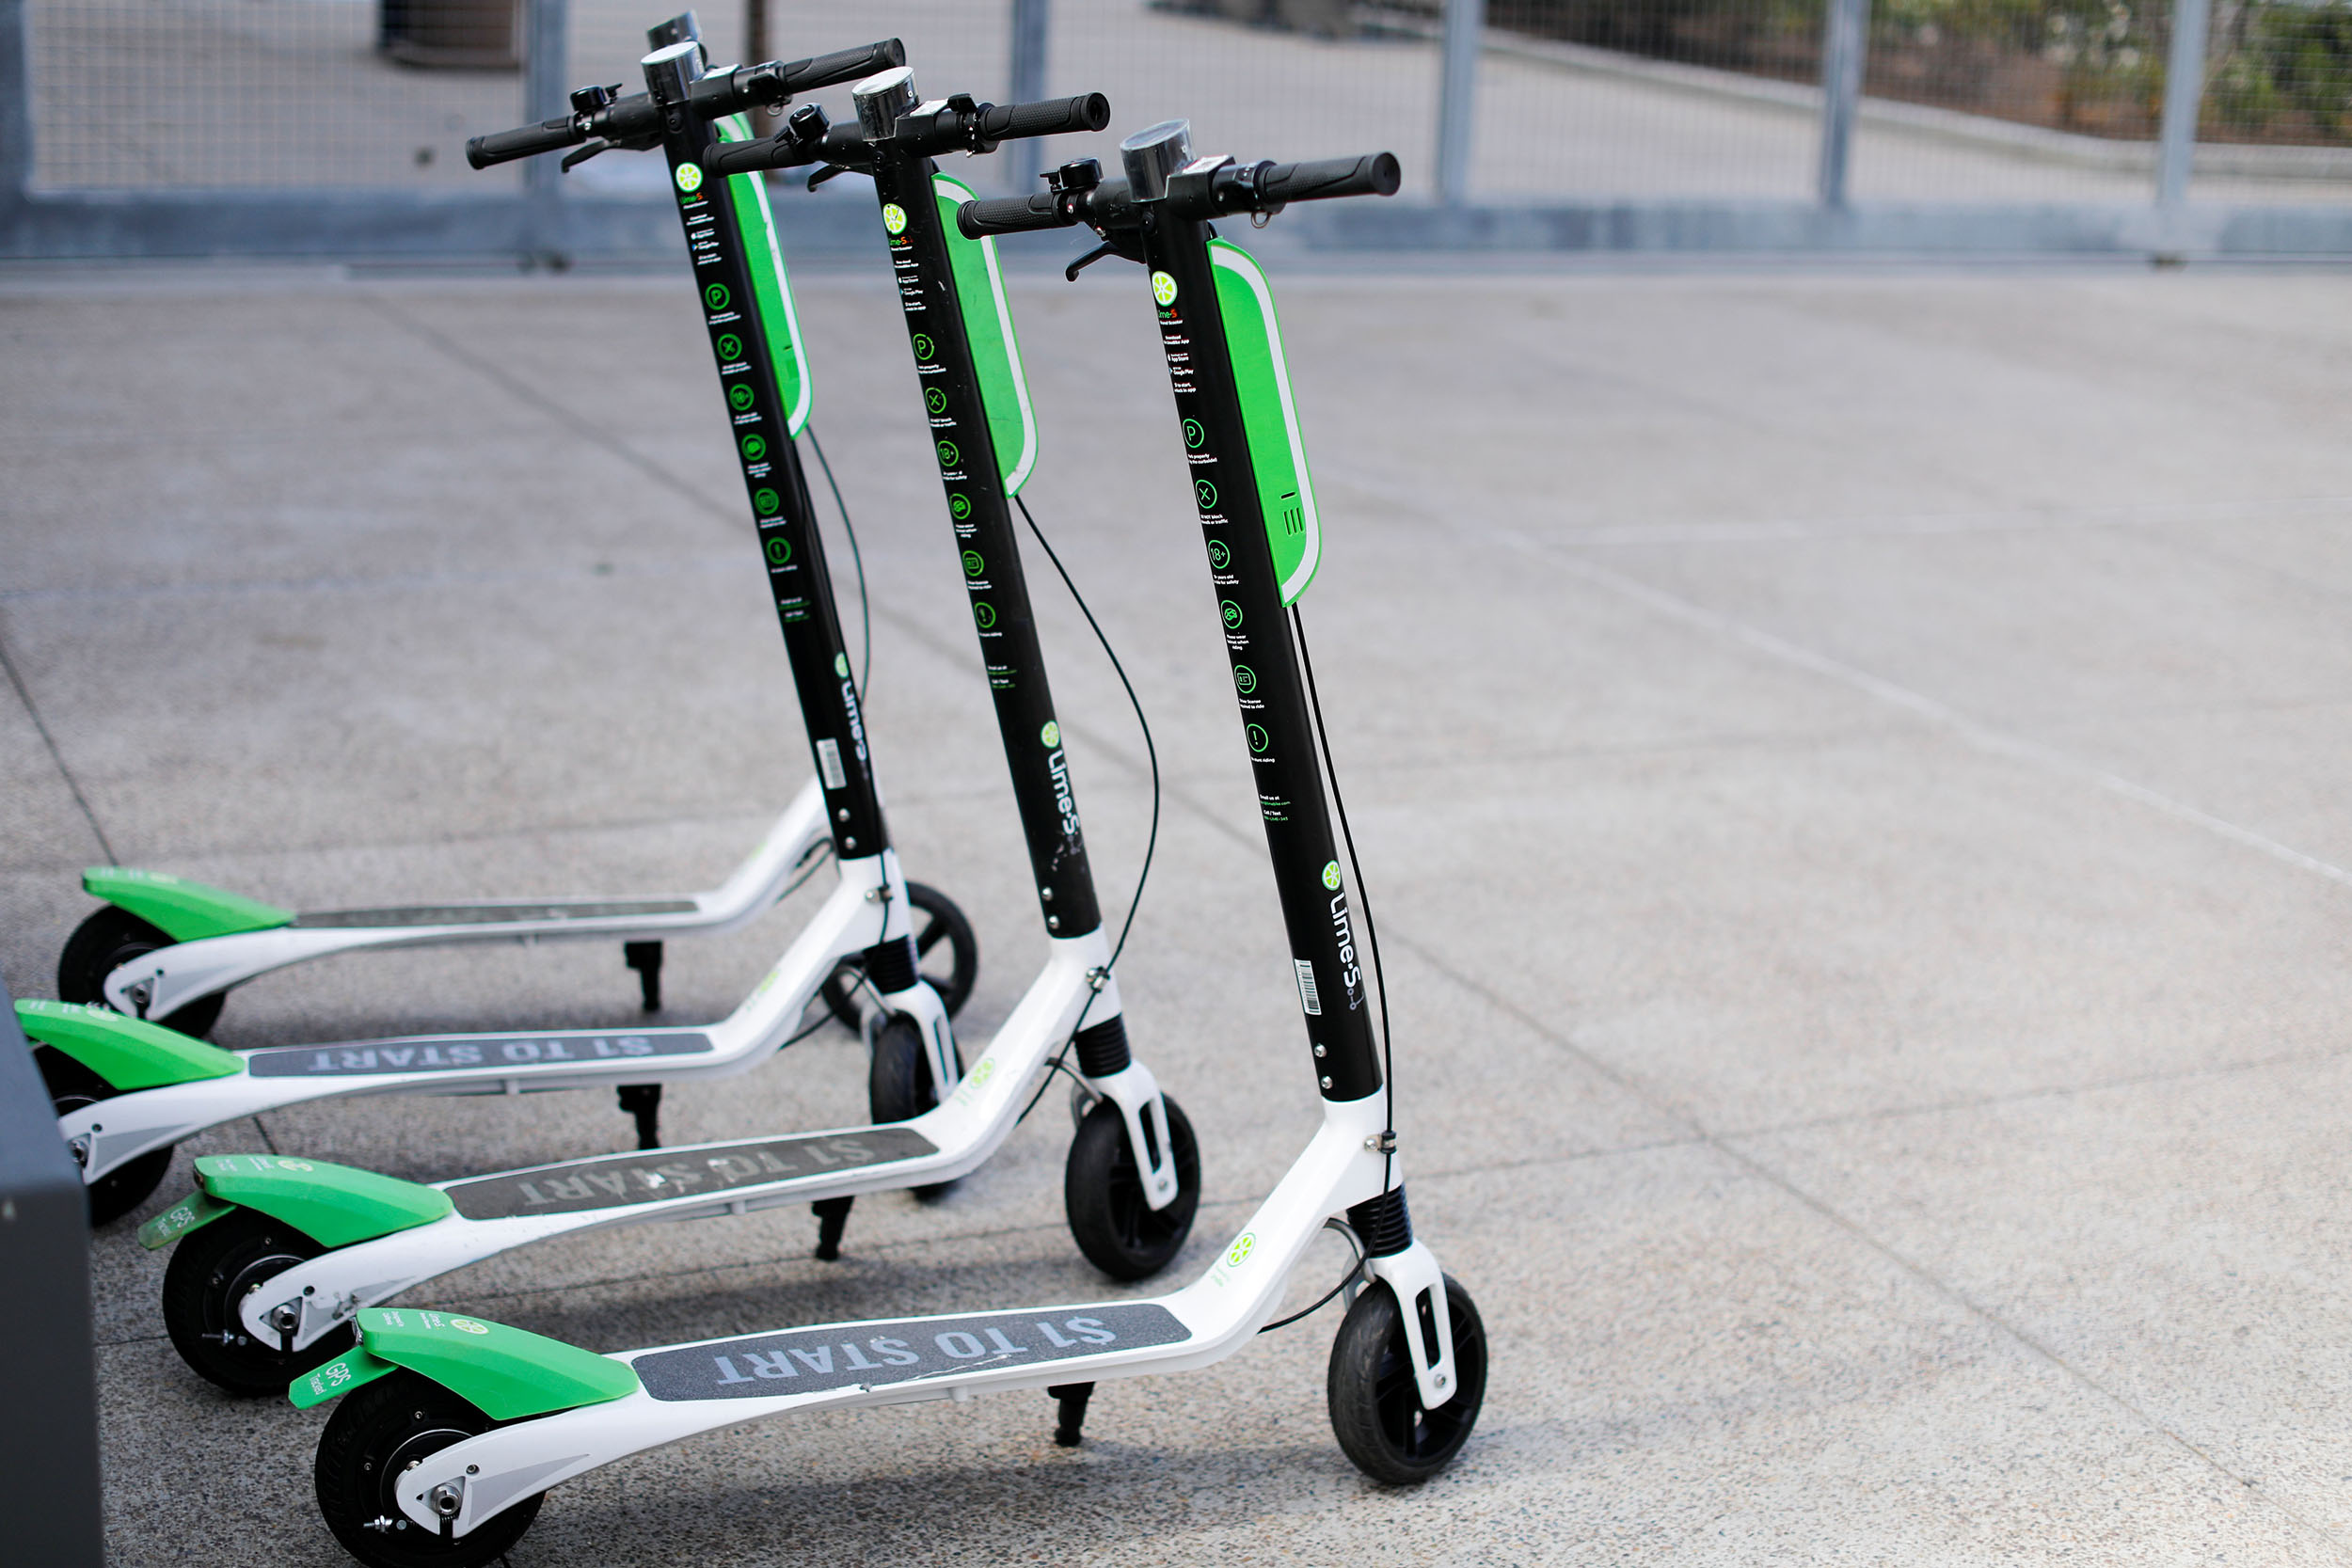 electric scooter rental company lime pulled thousands of scooters